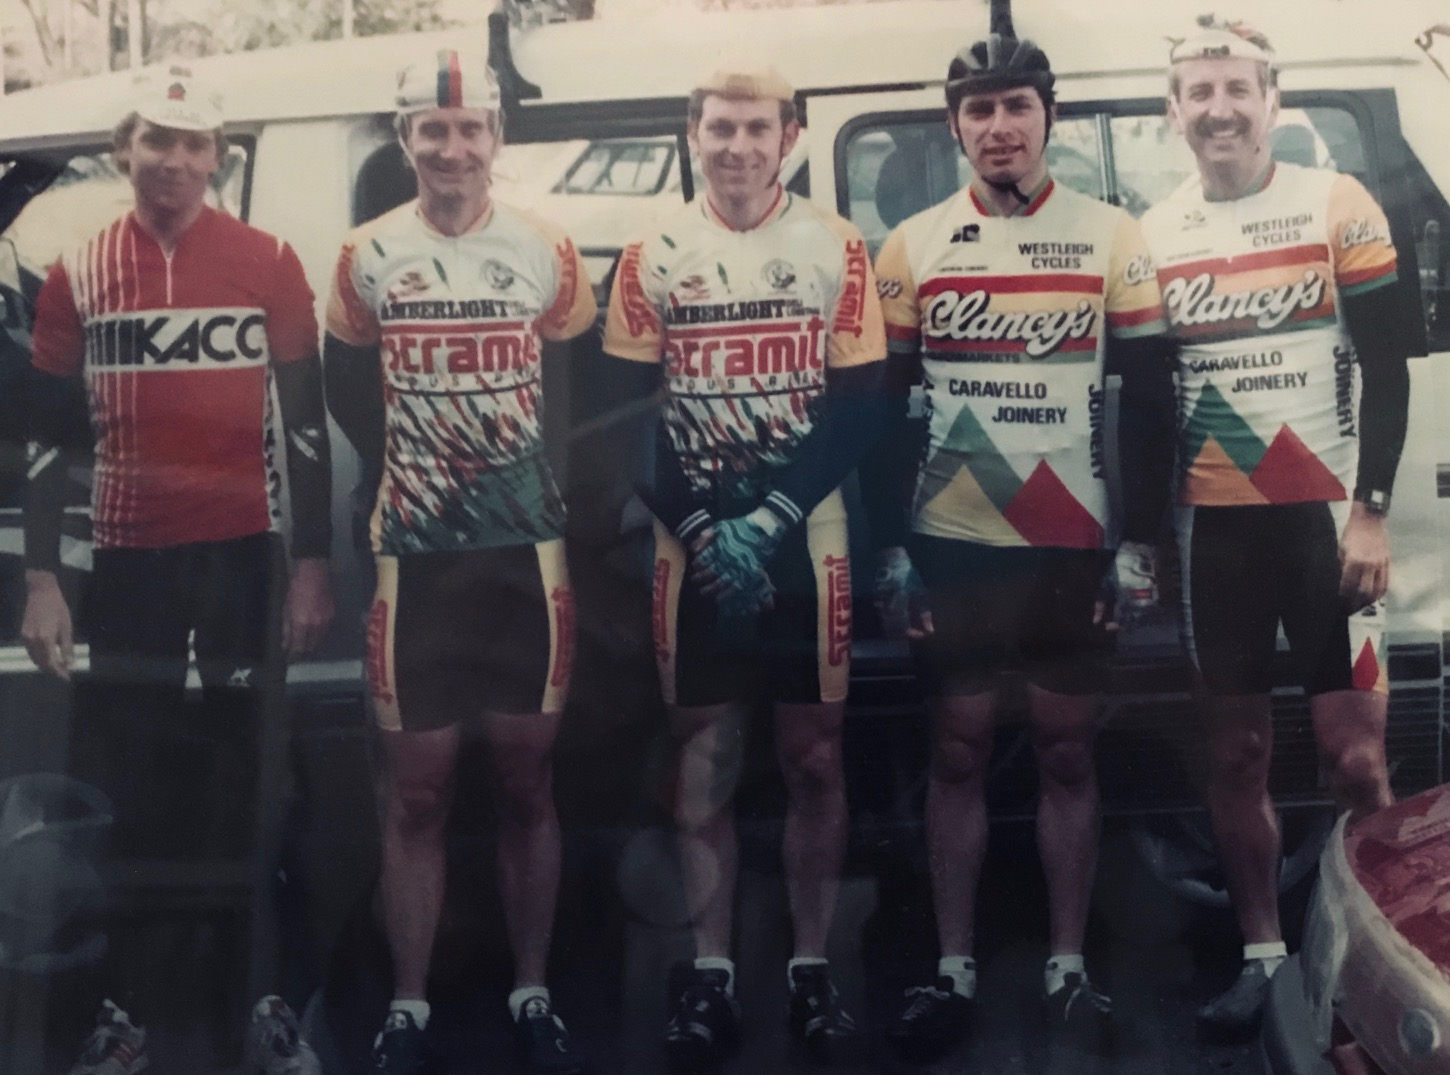 Goulburn Liverpool Classic 1988 - A 180k handicap with 250 starters departing Goulburn from 7.30am then onwards down the Old Hume Highway (there was no freeway in those days) then direction Marulan, Bundanoon, Exeter, Moss Vale, Picton, Camden, Campbelltown and finally finishing in the Liverpool main street.  L to R … Craig Beddome (South Australia), Peter Frisken, Peter Rowe, Peter Krause & Mike O'Reilly